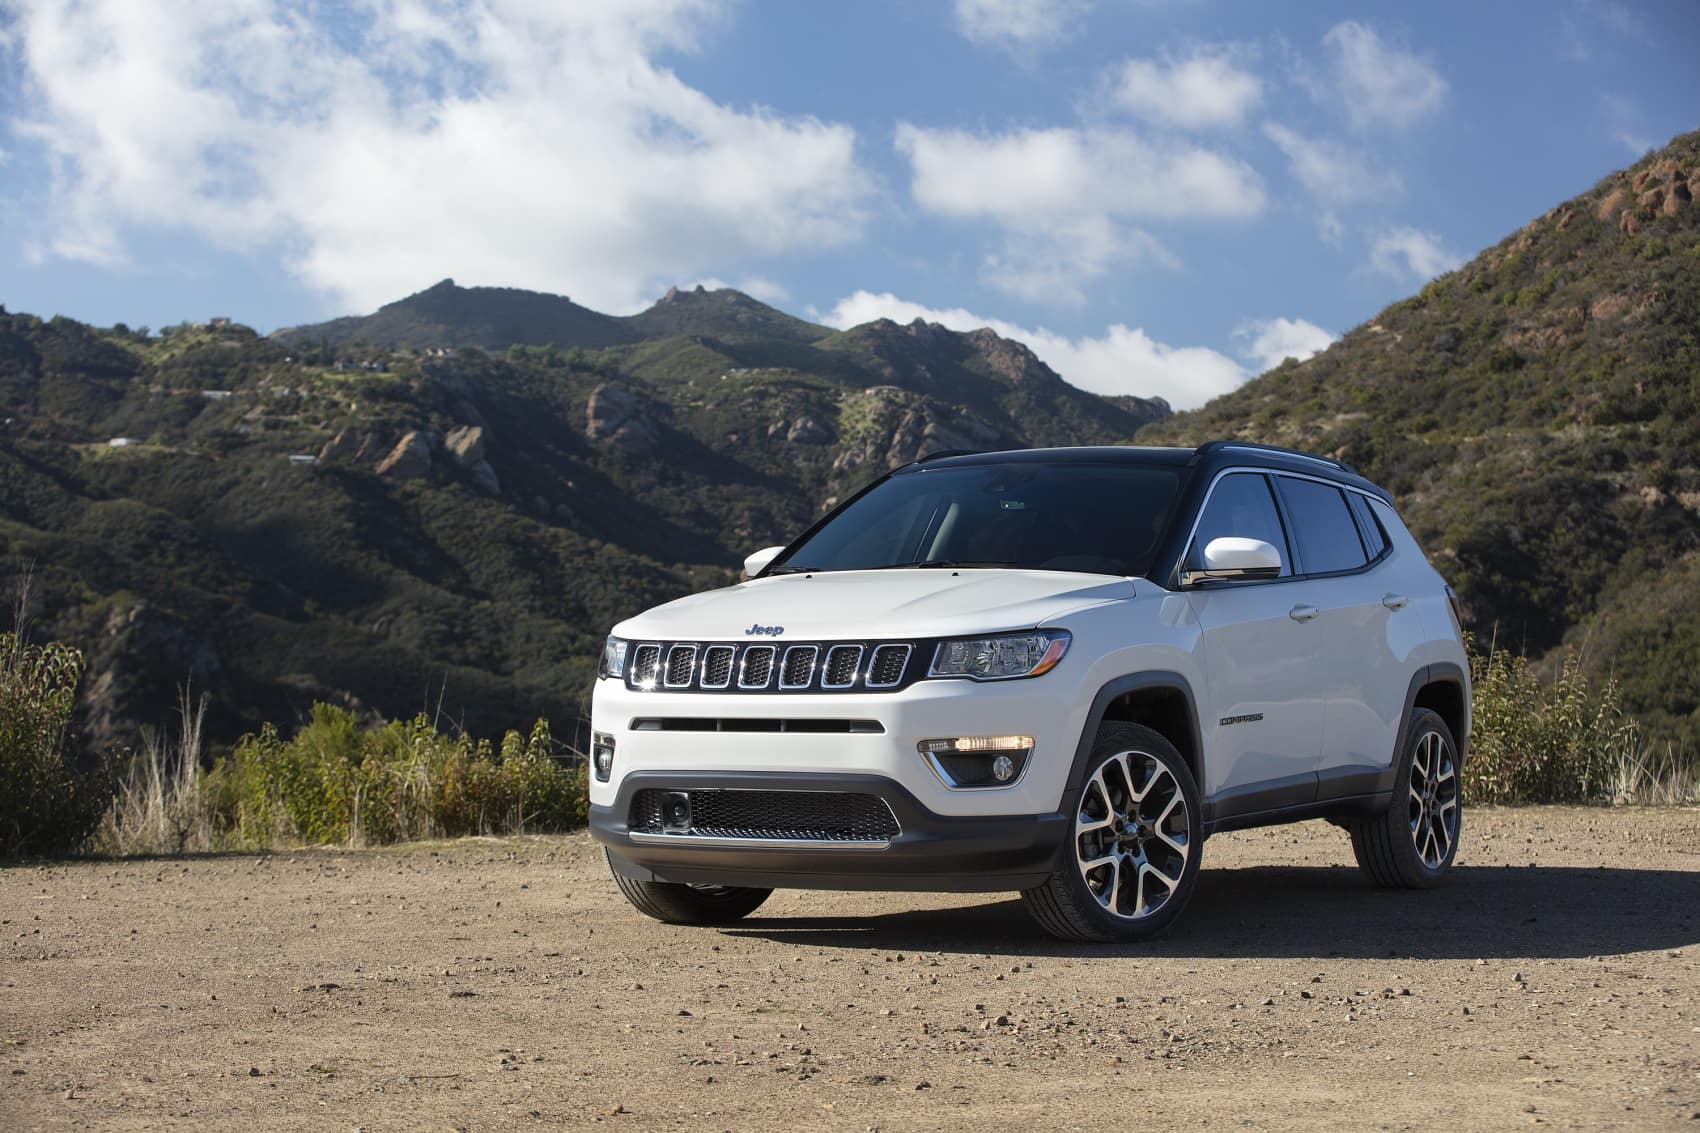 2021 Jeep Compass Off-Road Capabilities